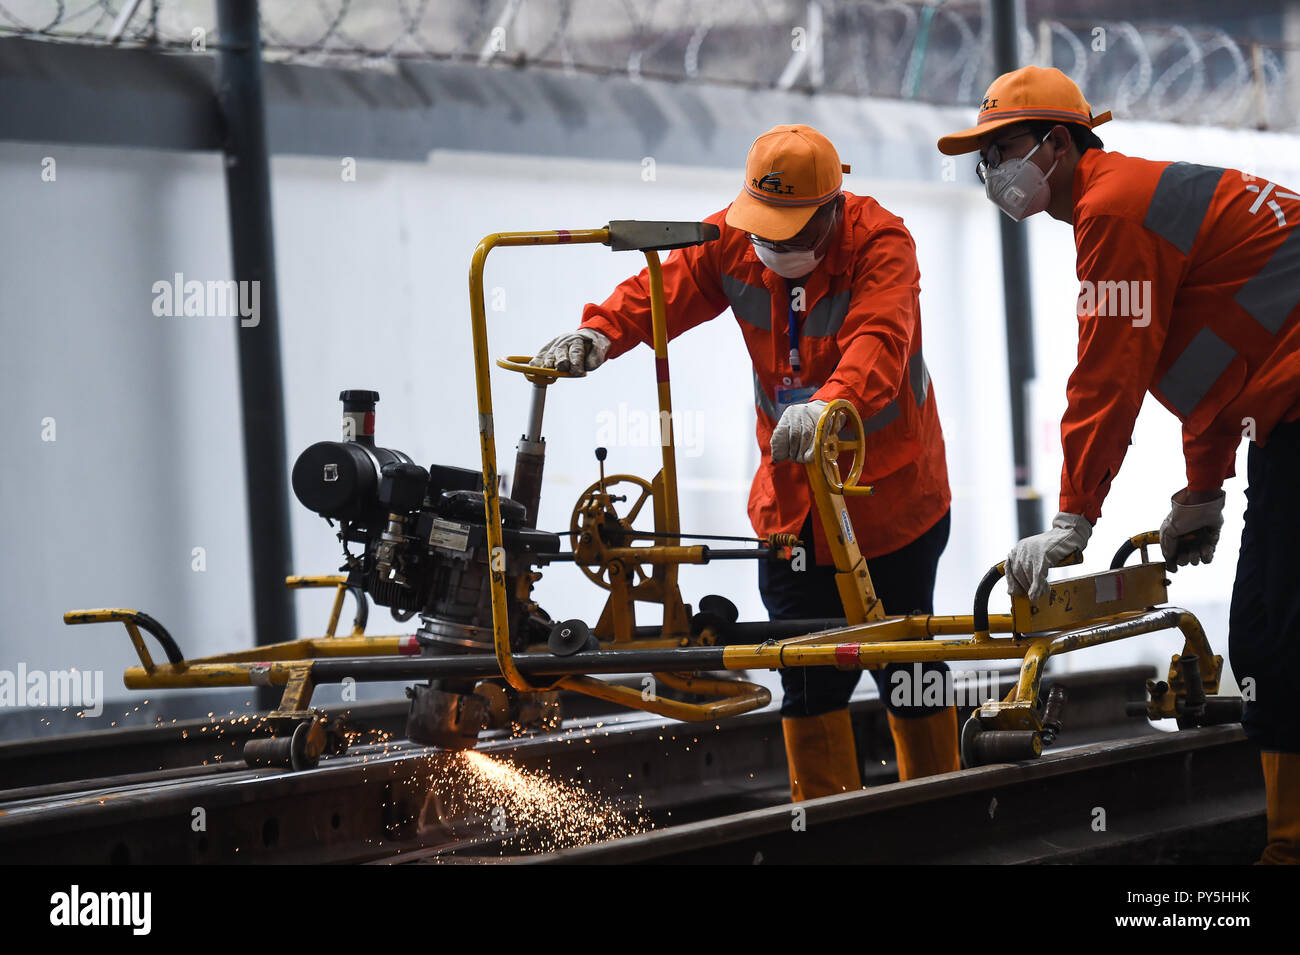 Liupanshui, China's Guizhou Province. 25th Oct, 2018. Two contestants burnish rail during a skill competition in Liupanshui, southwest China's Guizhou Province, Oct. 25, 2018. A total of 30 railway workers participated in the competition. Credit: Tao Liang/Xinhua/Alamy Live News - Stock Image